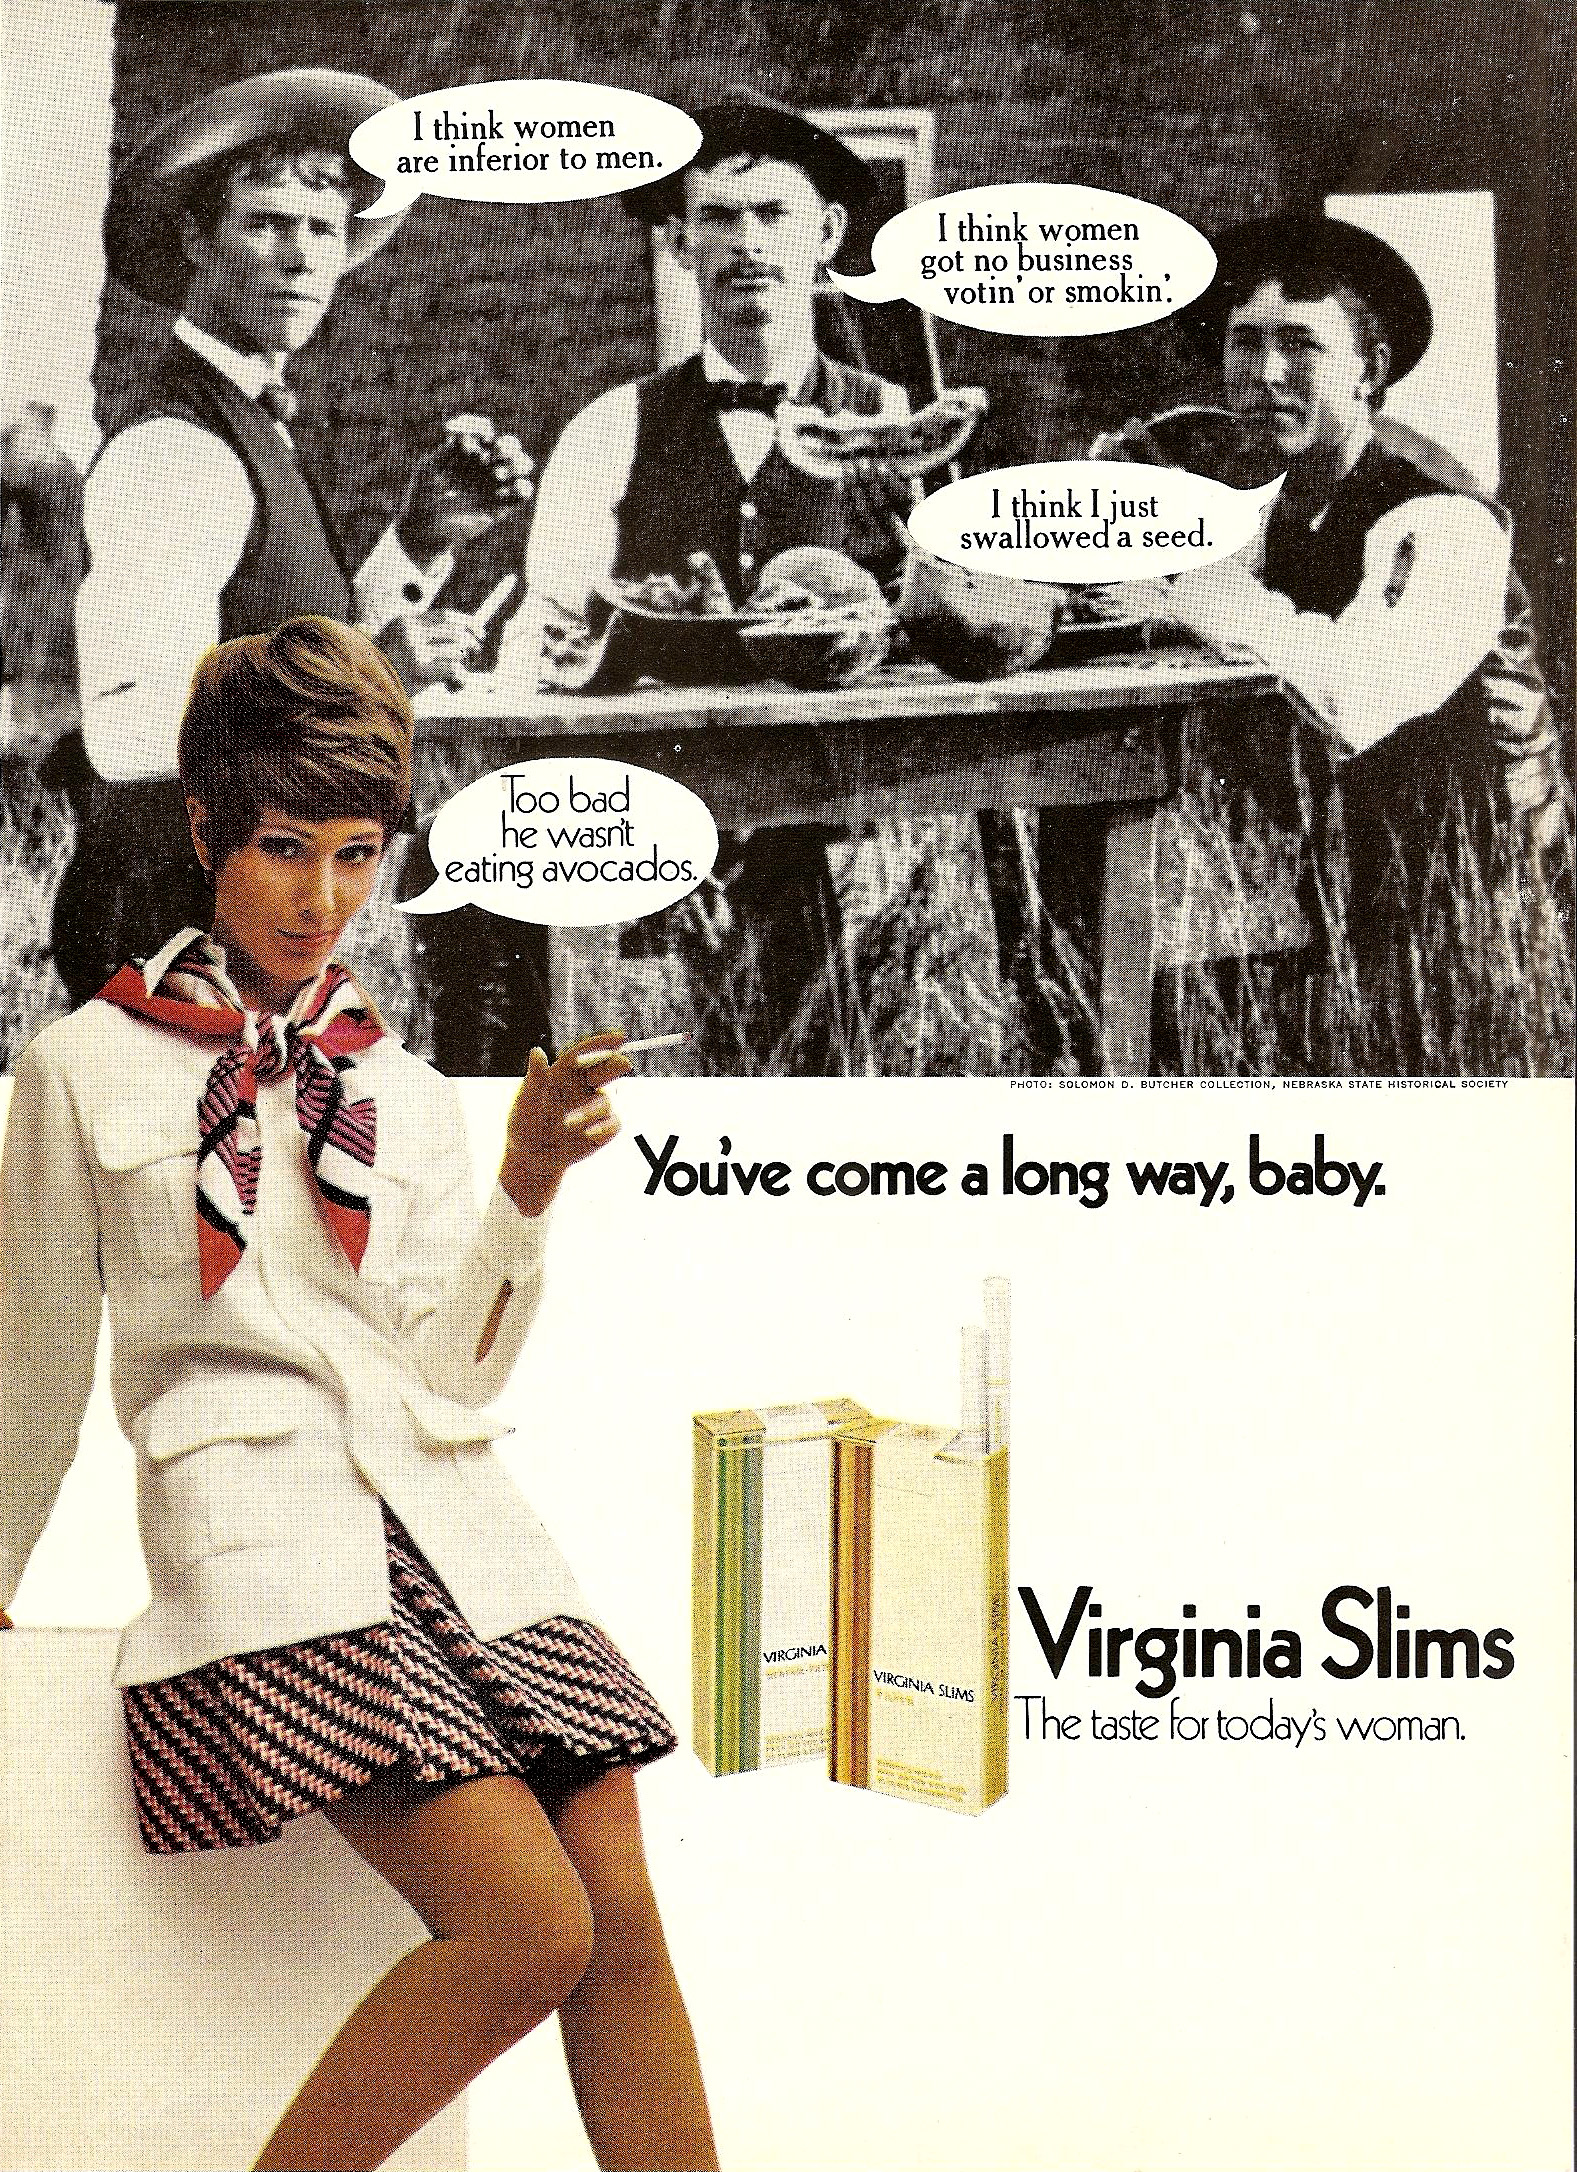 1970 virginia slims advertisement